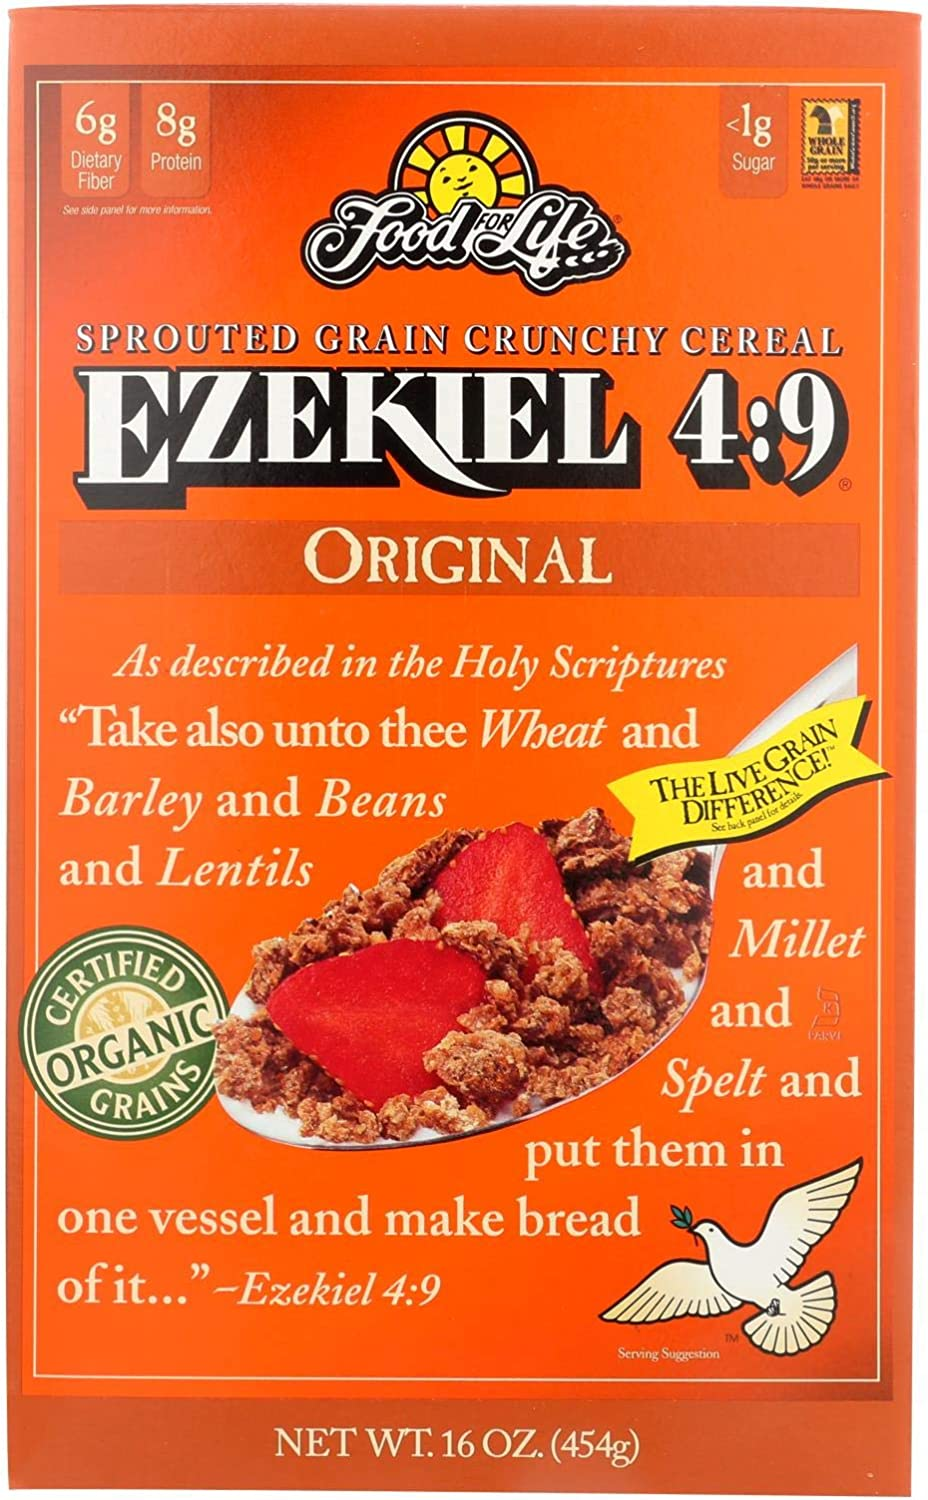 Food For Life Baking Co. - Organic - Ezekiel 4-9 - Sprouted Whole Grain Crunchy Cereal - Original - 16 oz - case of 6 - Dairy Free - Yeast Free -Vegan